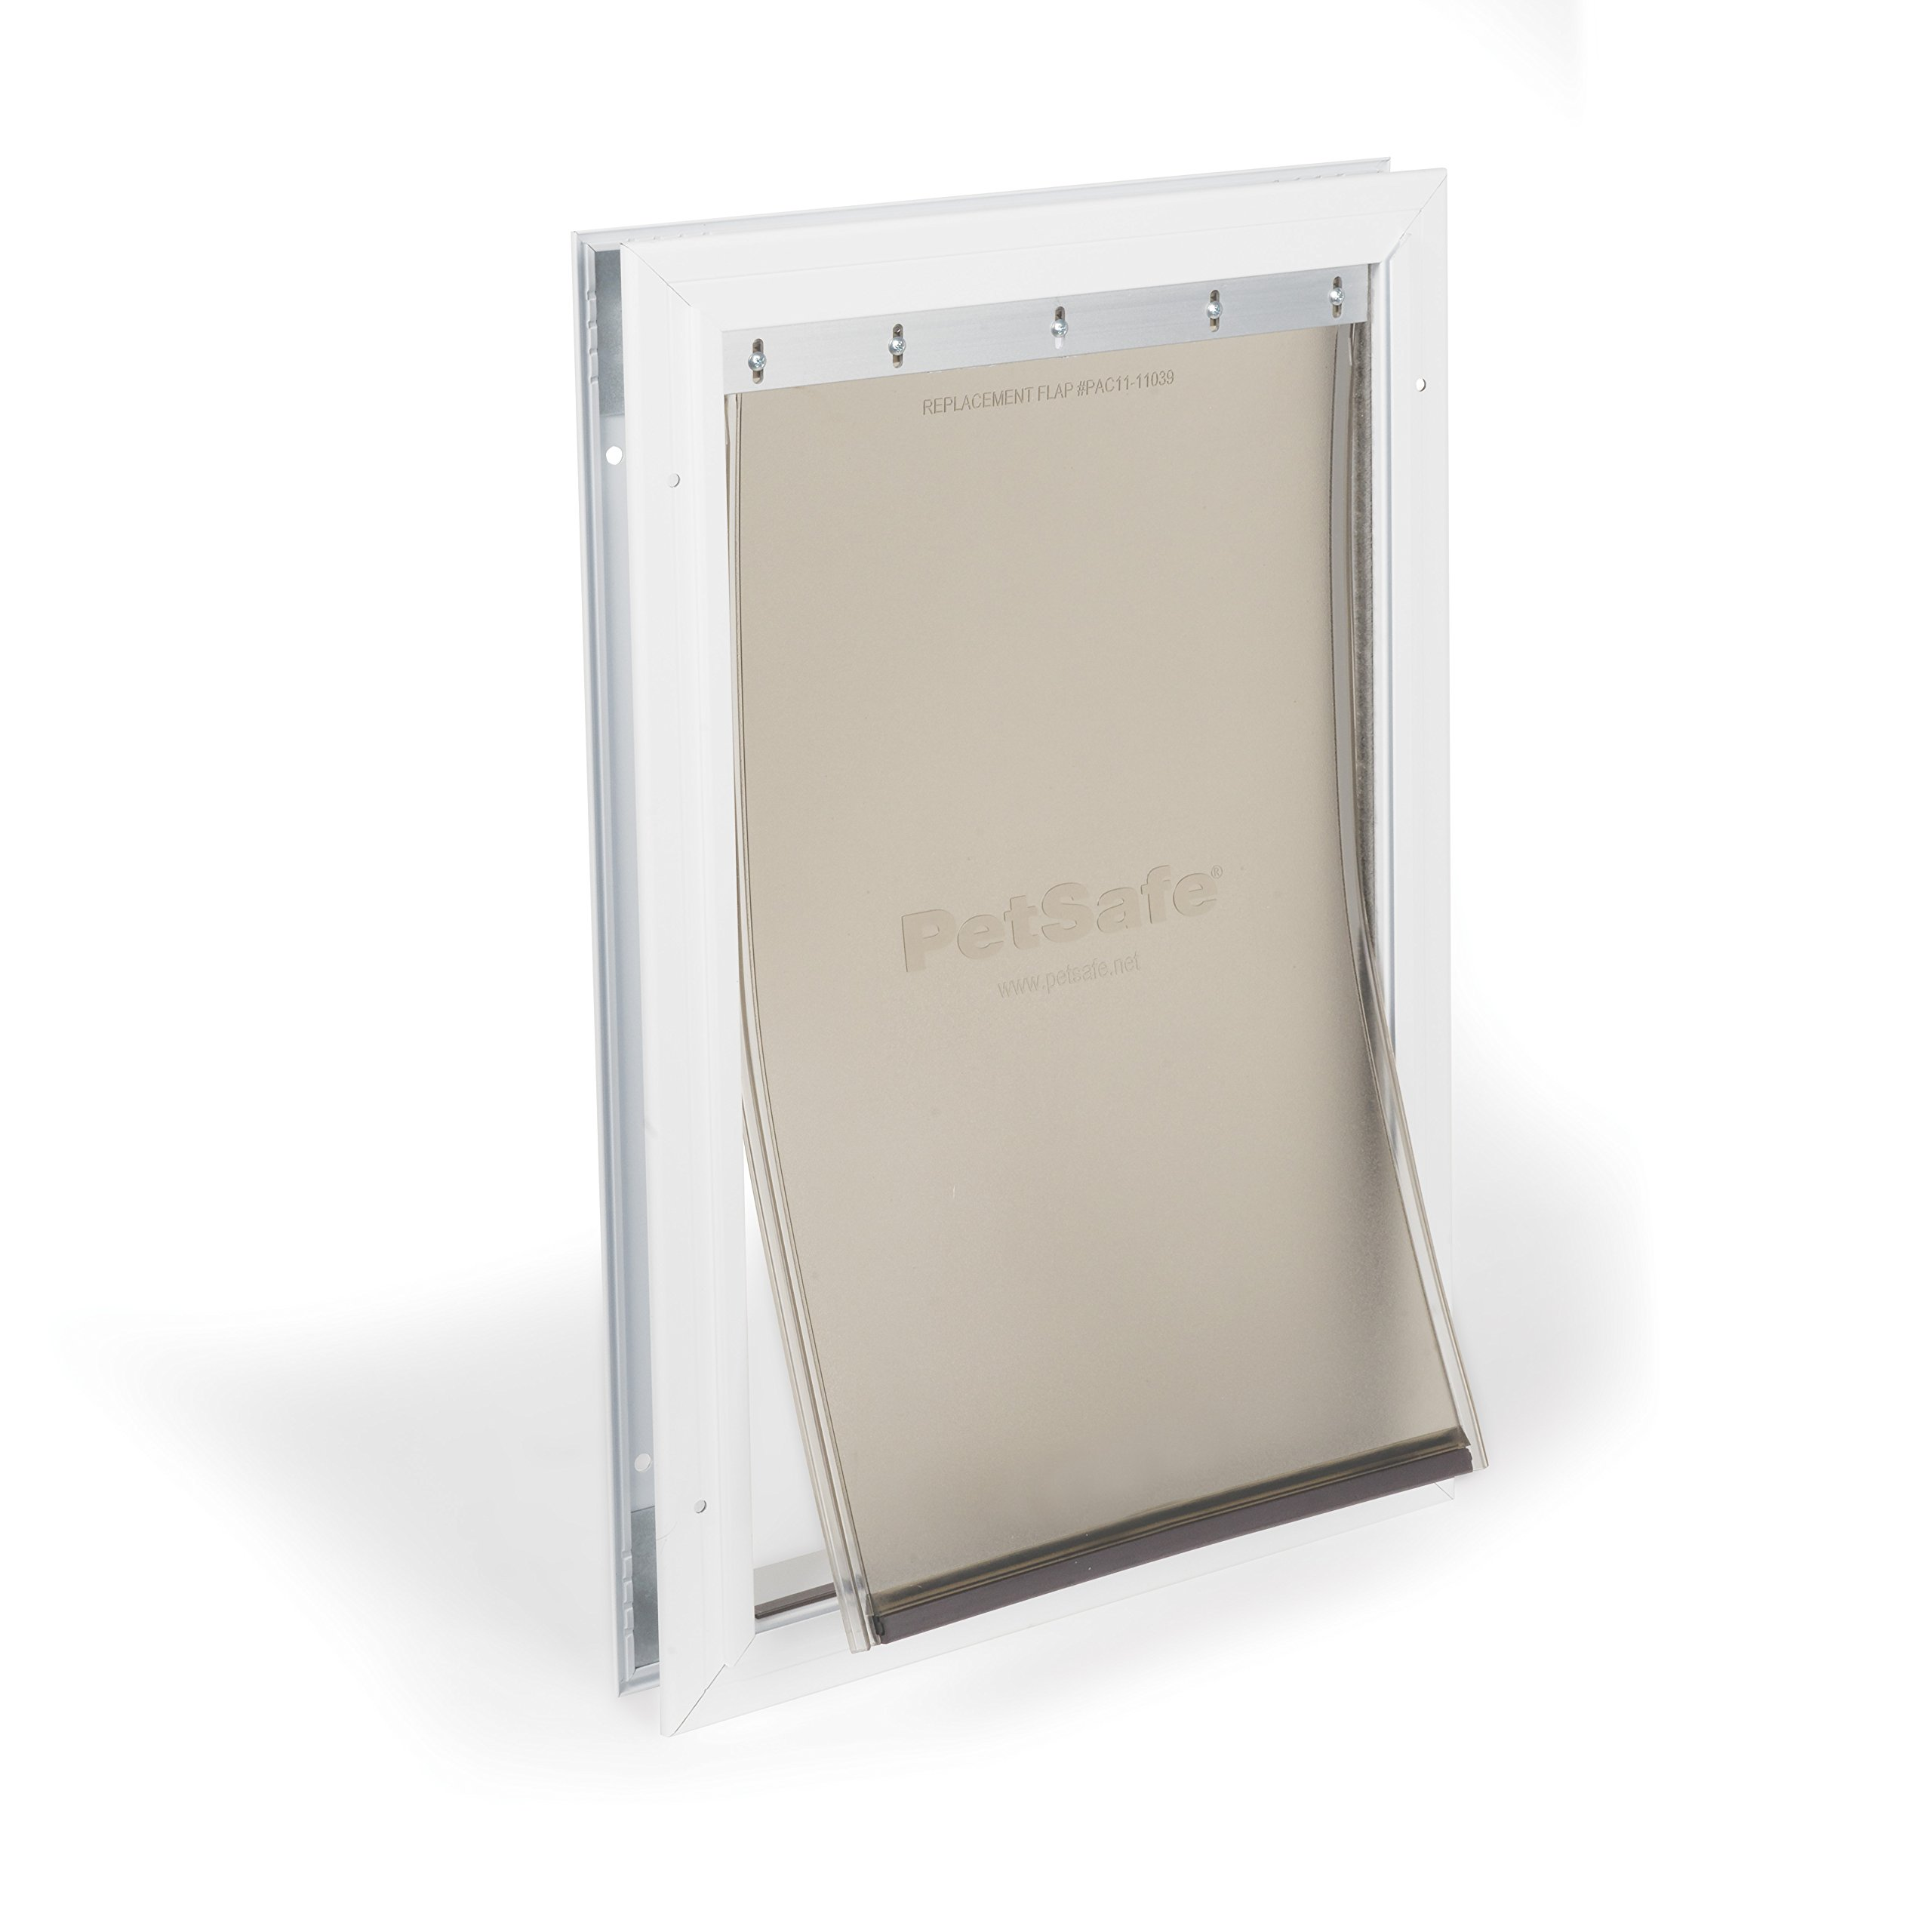 amazon dog door helpful com telescoping patio freedom frame large ideal petsafe reviews series best panel doors super with customer pet plastic designer in products rated pcr